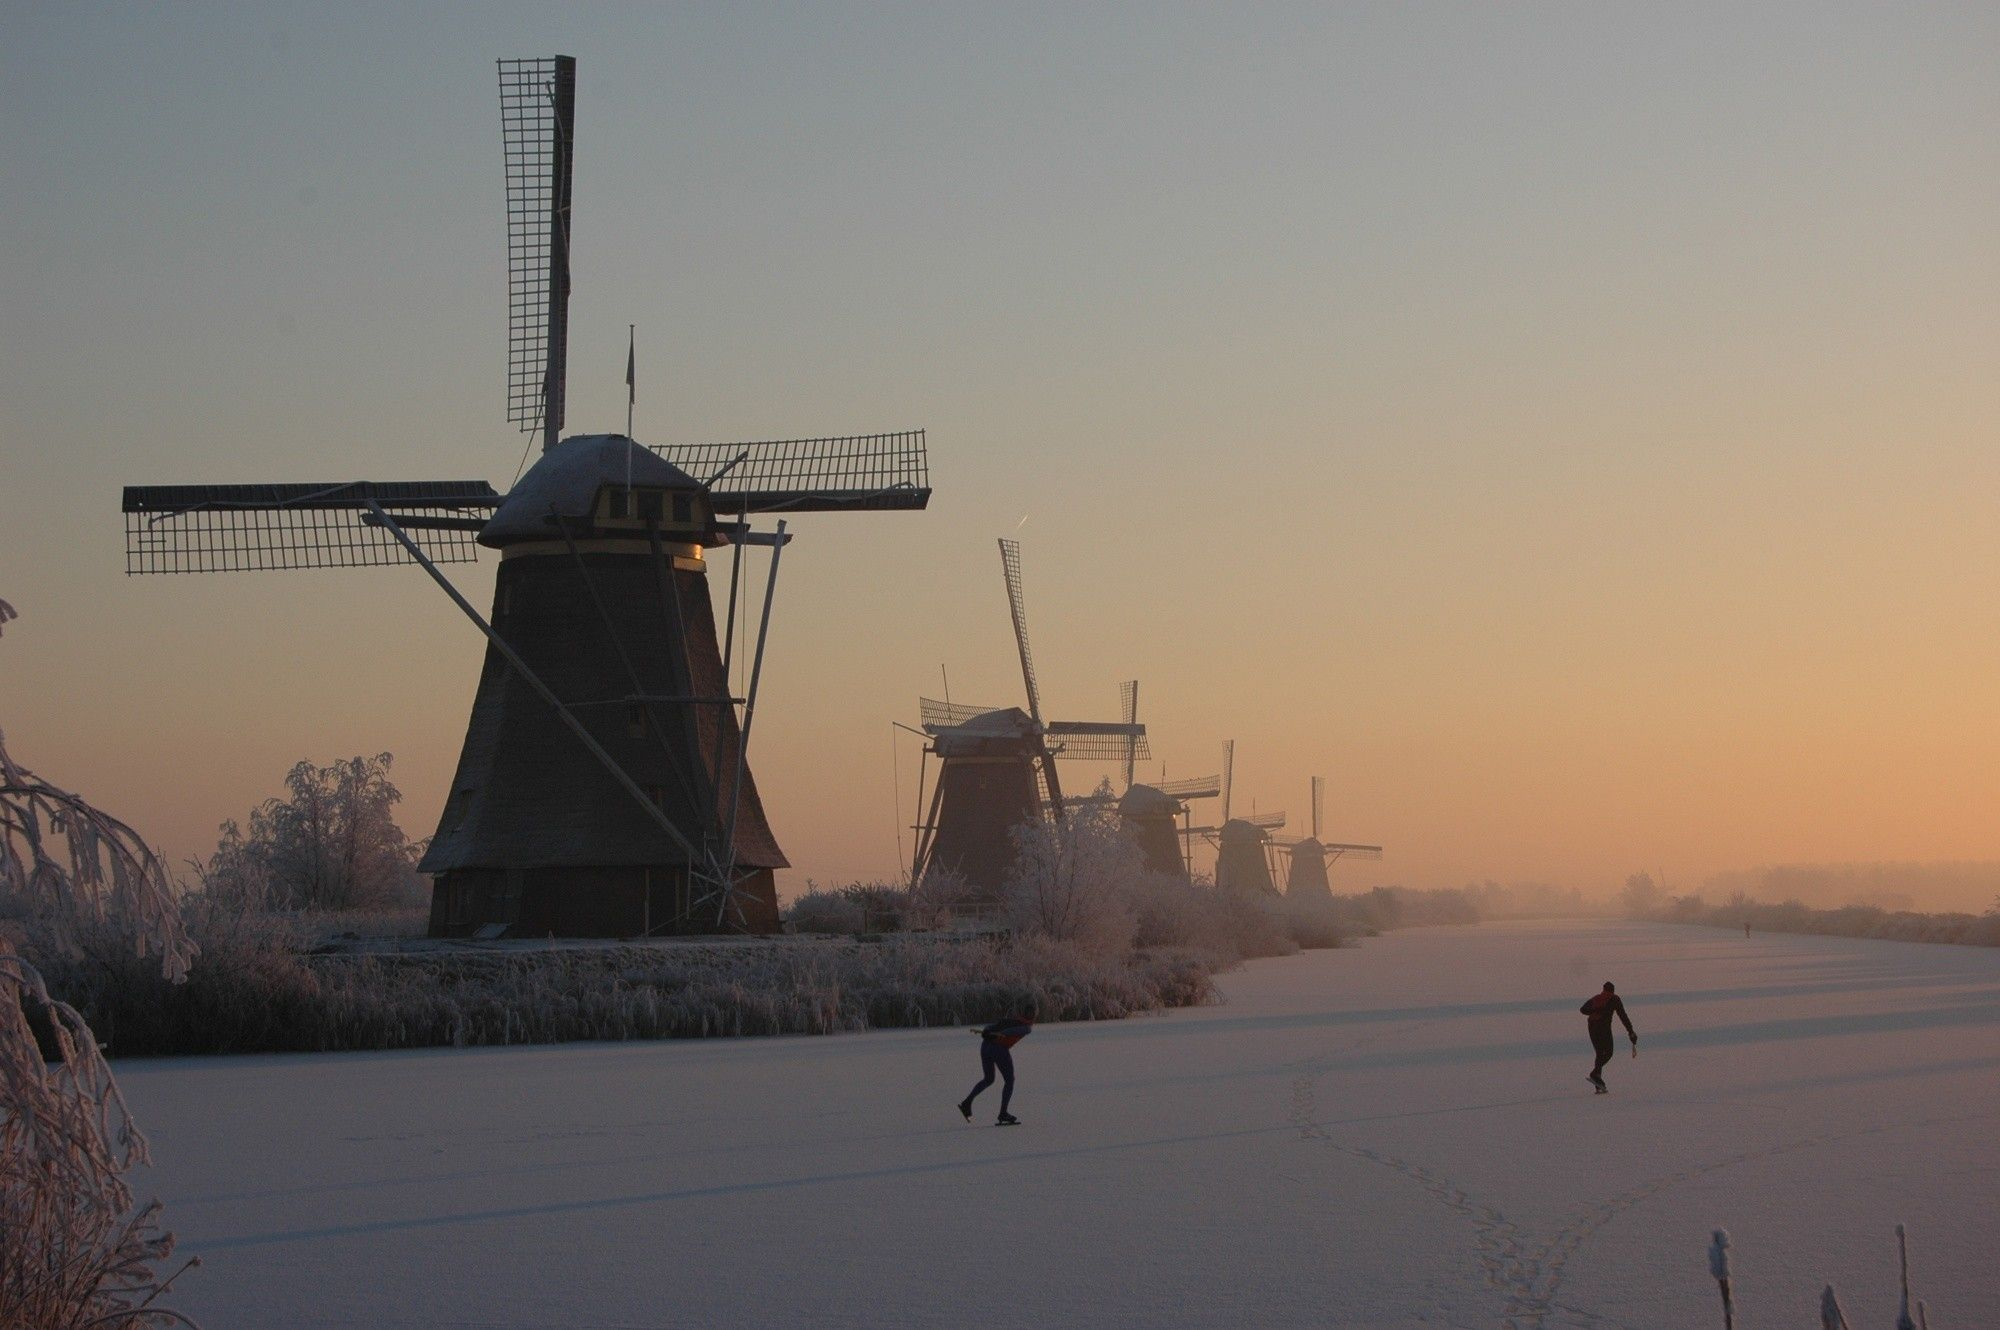 skating in the Netherlands.